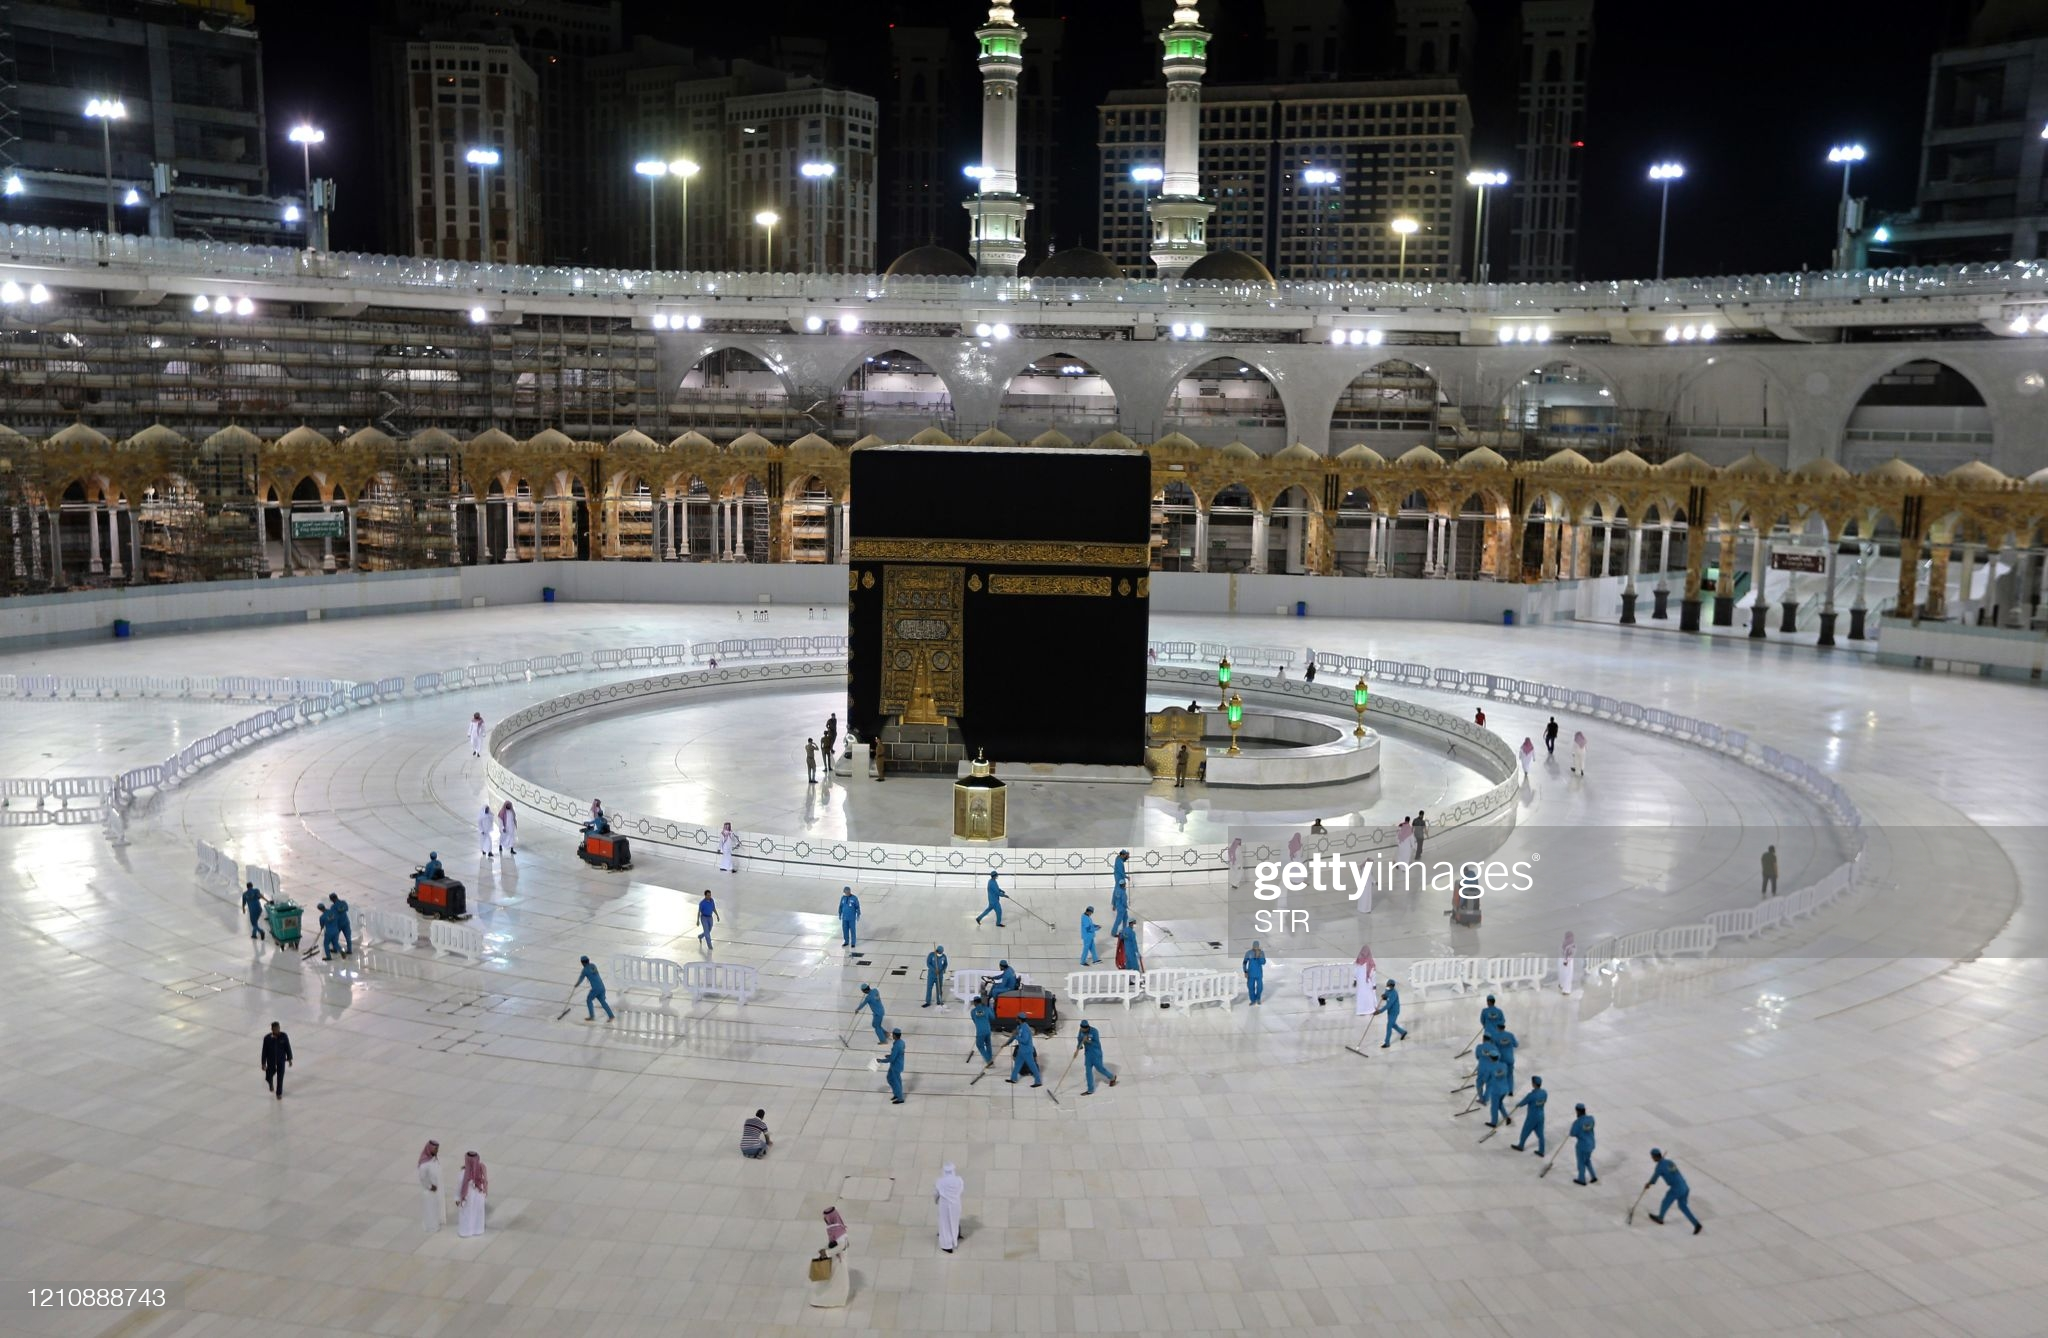 TOPSHOT - A picture taken on April 24, 2020, shows sanitation workers disinfection the area arround the Kaaba in Mecca's Grand Mosque, on the first day of the Islamic holy month of Ramadan, amid unprecedented bans on family gatherings and mass prayers due to the coronavirus (COVID-19) pandemic. (Photo by STR / AFP) (Photo by STR/AFP via Getty Images)